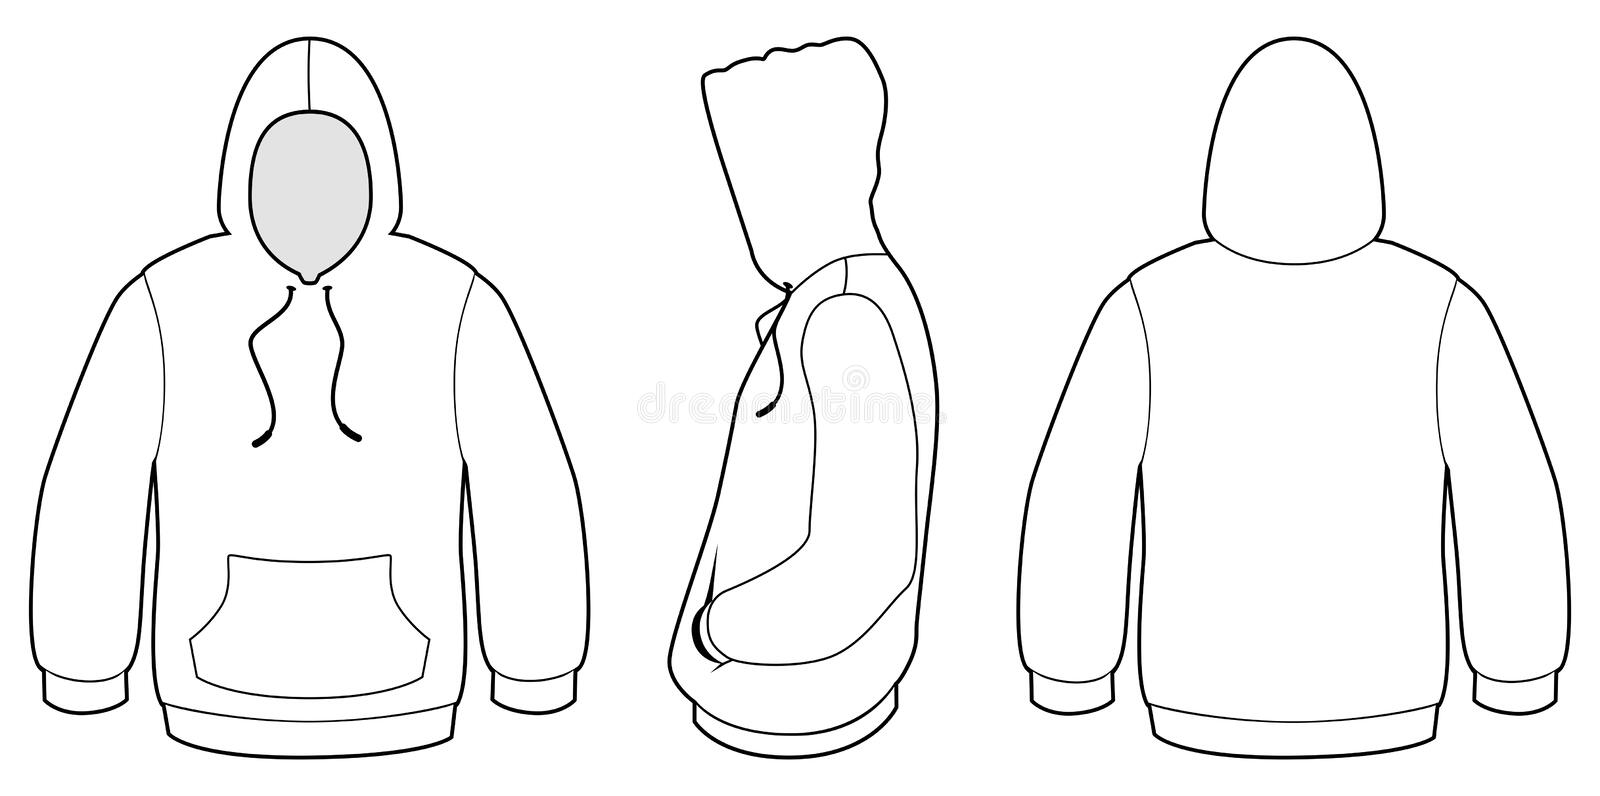 Hooded sweater template vector illustration stock vector Coloring book hoodie